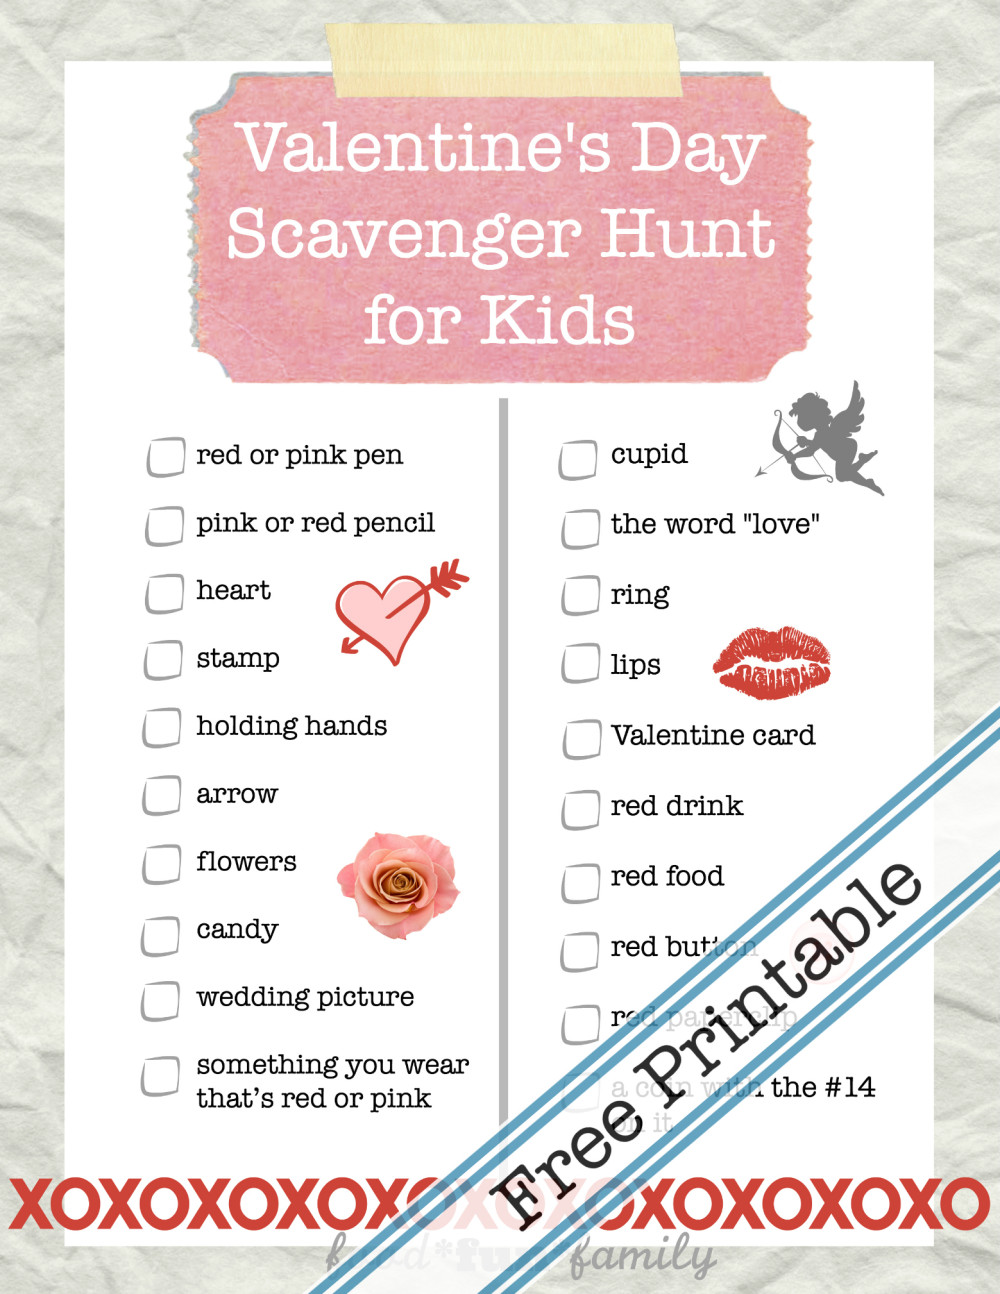 Valentine's Day Scavenger Hunt for Kids from Food Fun Family - a free printable